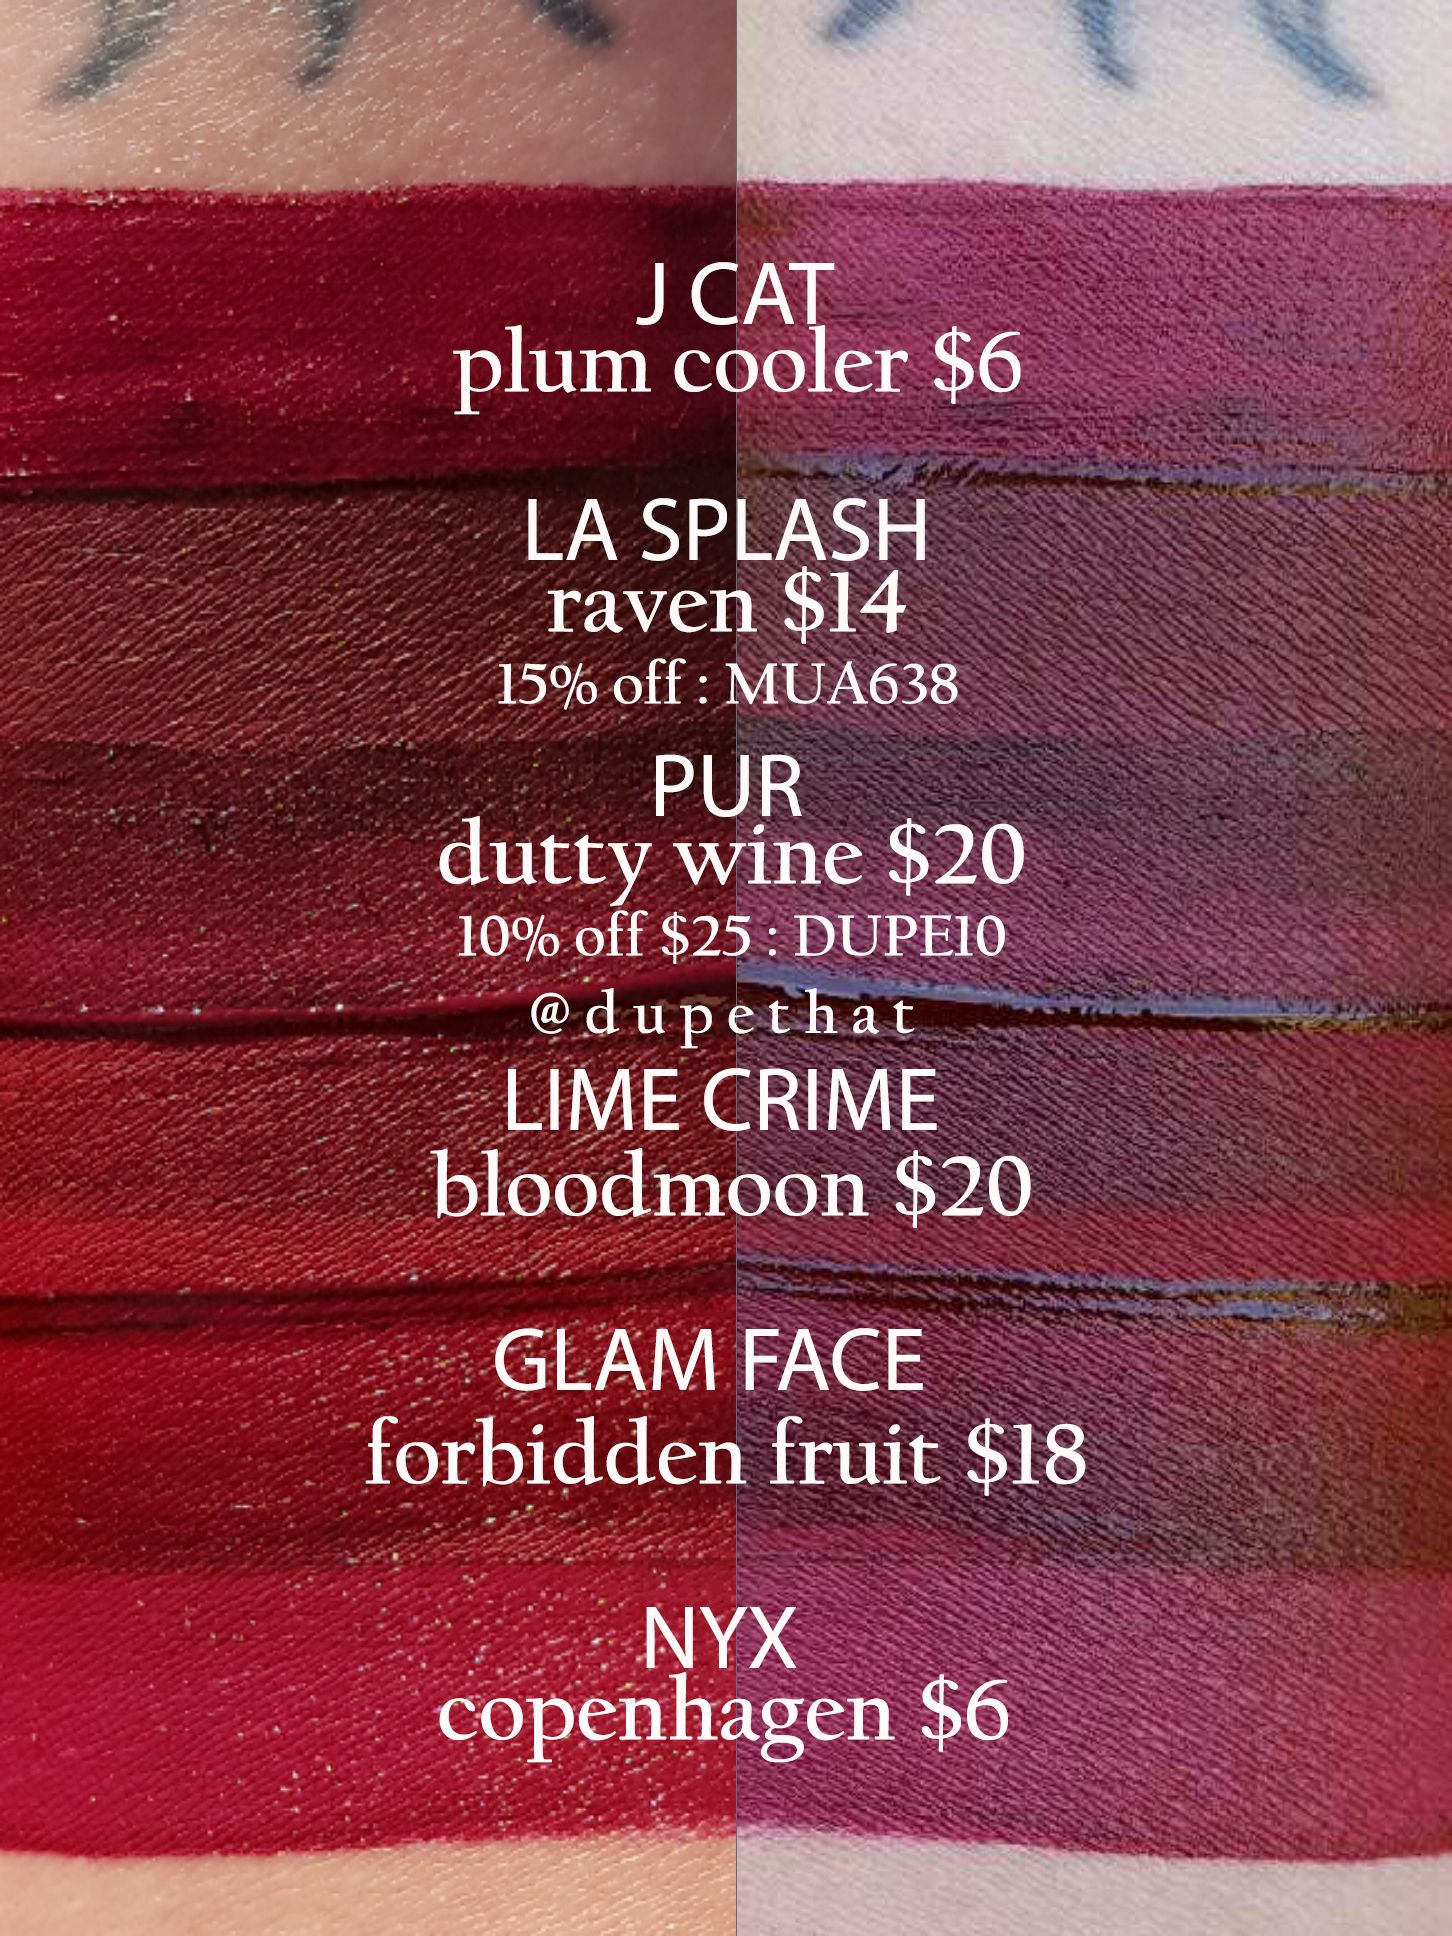 Lime Crime Bloodmoon Dupes Dupethat Lipstick Dupes Liquid Lipstick Dupes Everlasting Liquid Lipstick